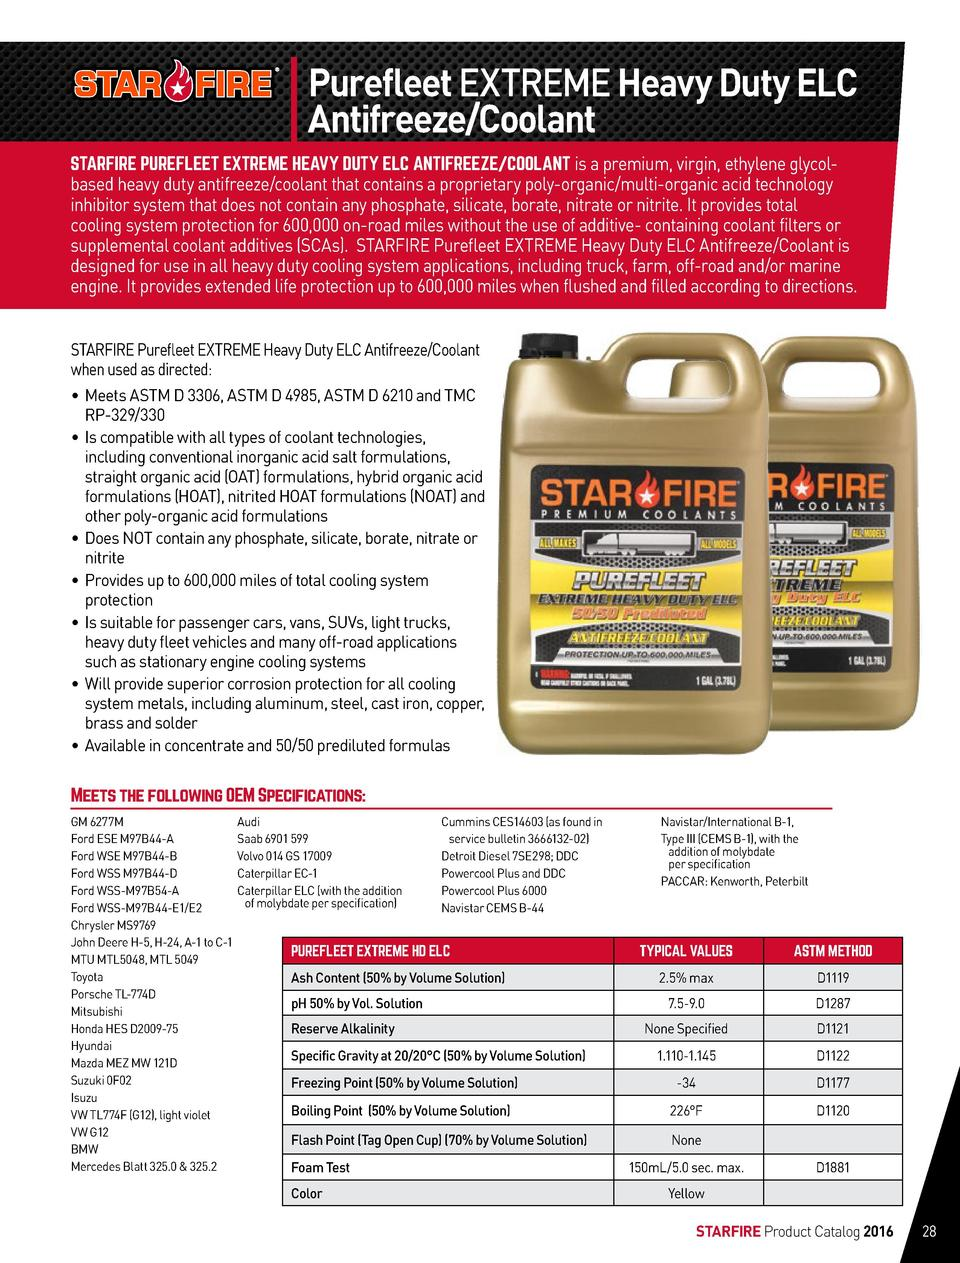 Purefleet EXTREME Heavy Duty ELC Antifreeze Coolant STARFIRE PUREFLEET EXTREME HEAVY DUTY ELC ANTIFREEZE COOLANT is a prem...